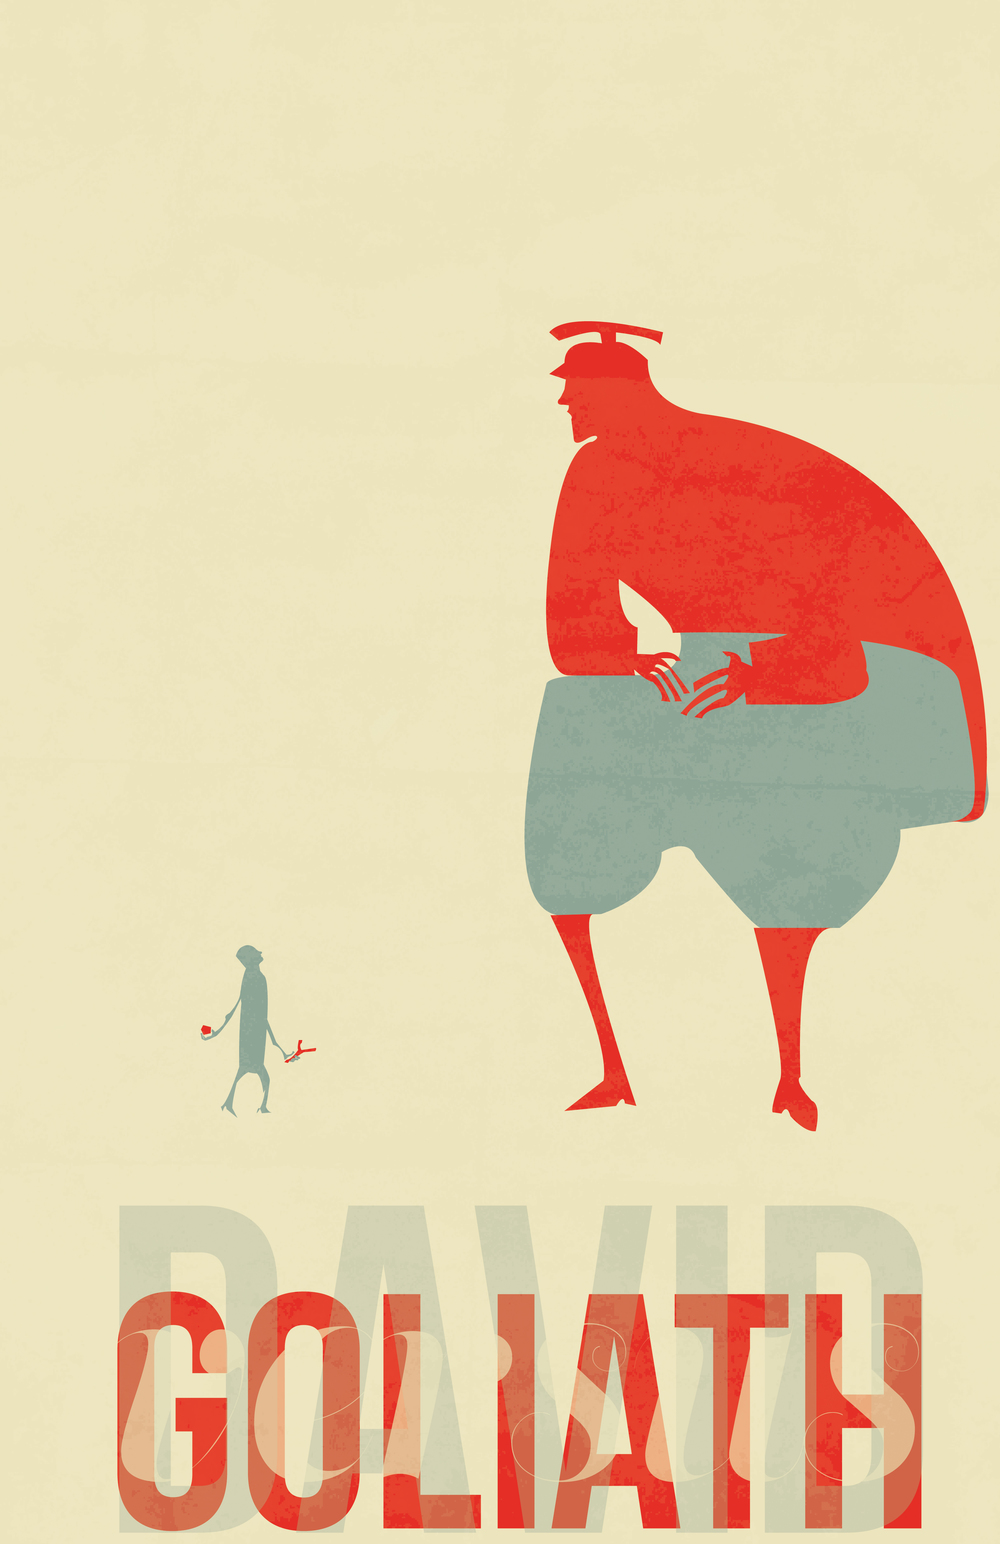 Old Testament Series: David and Goliath